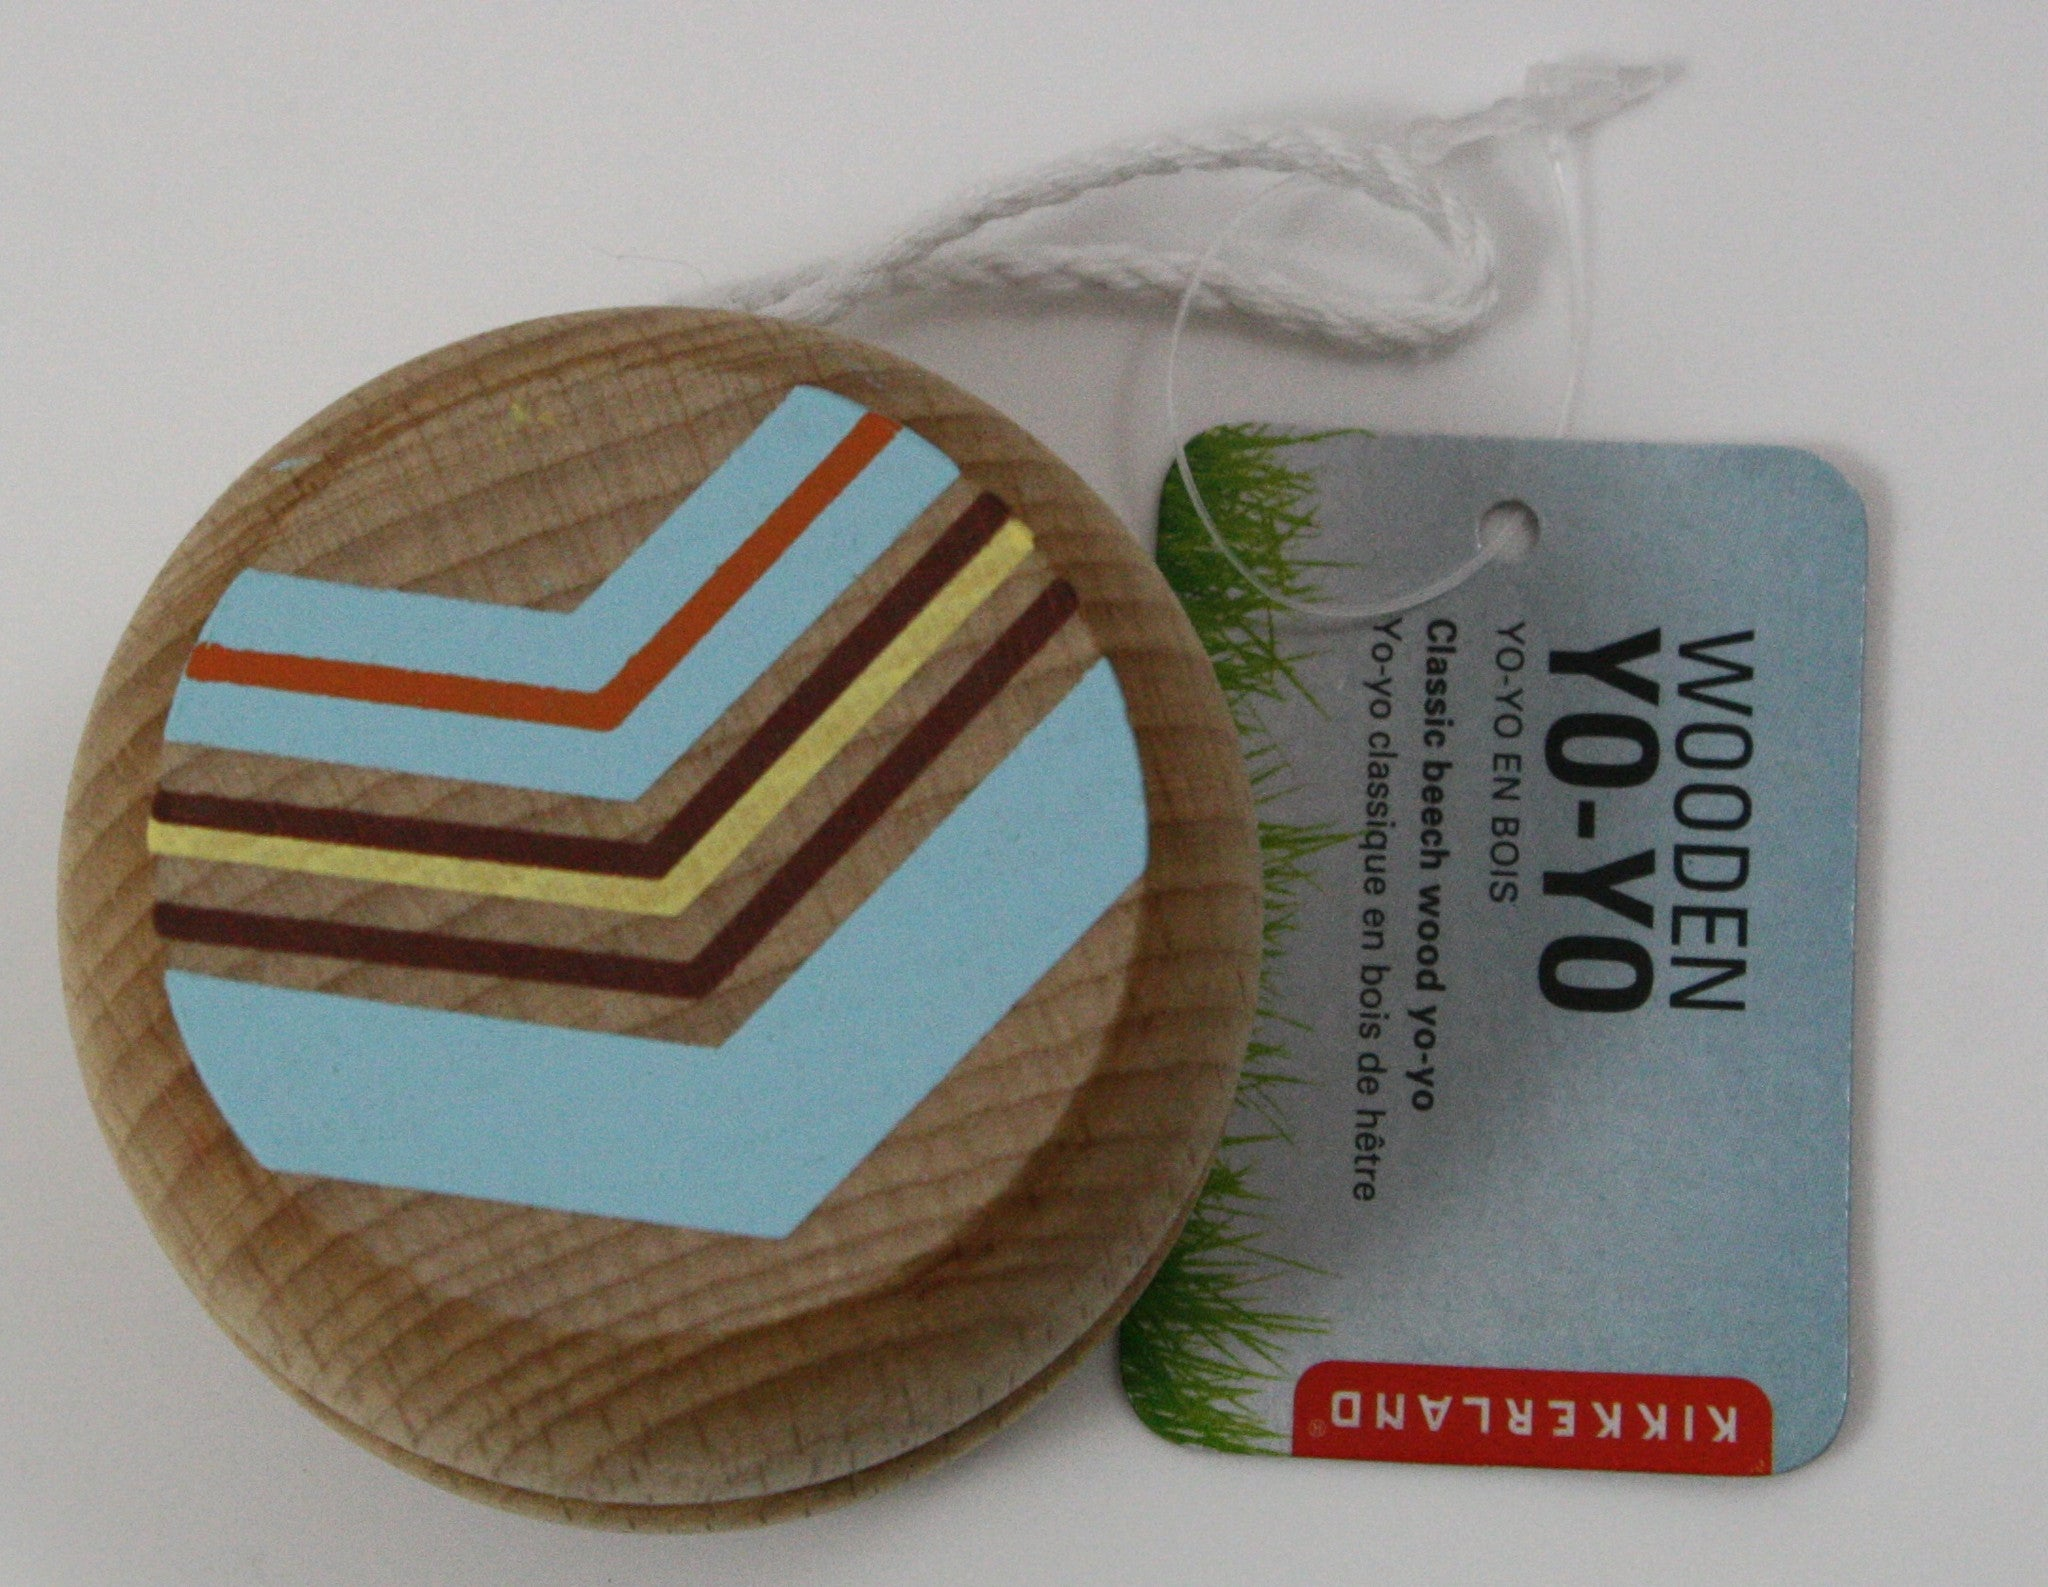 Classic Beech Wood Wooden Yo-Yo by Kikkerland - Assorted Colors - Off The Wall Toys and Gifts